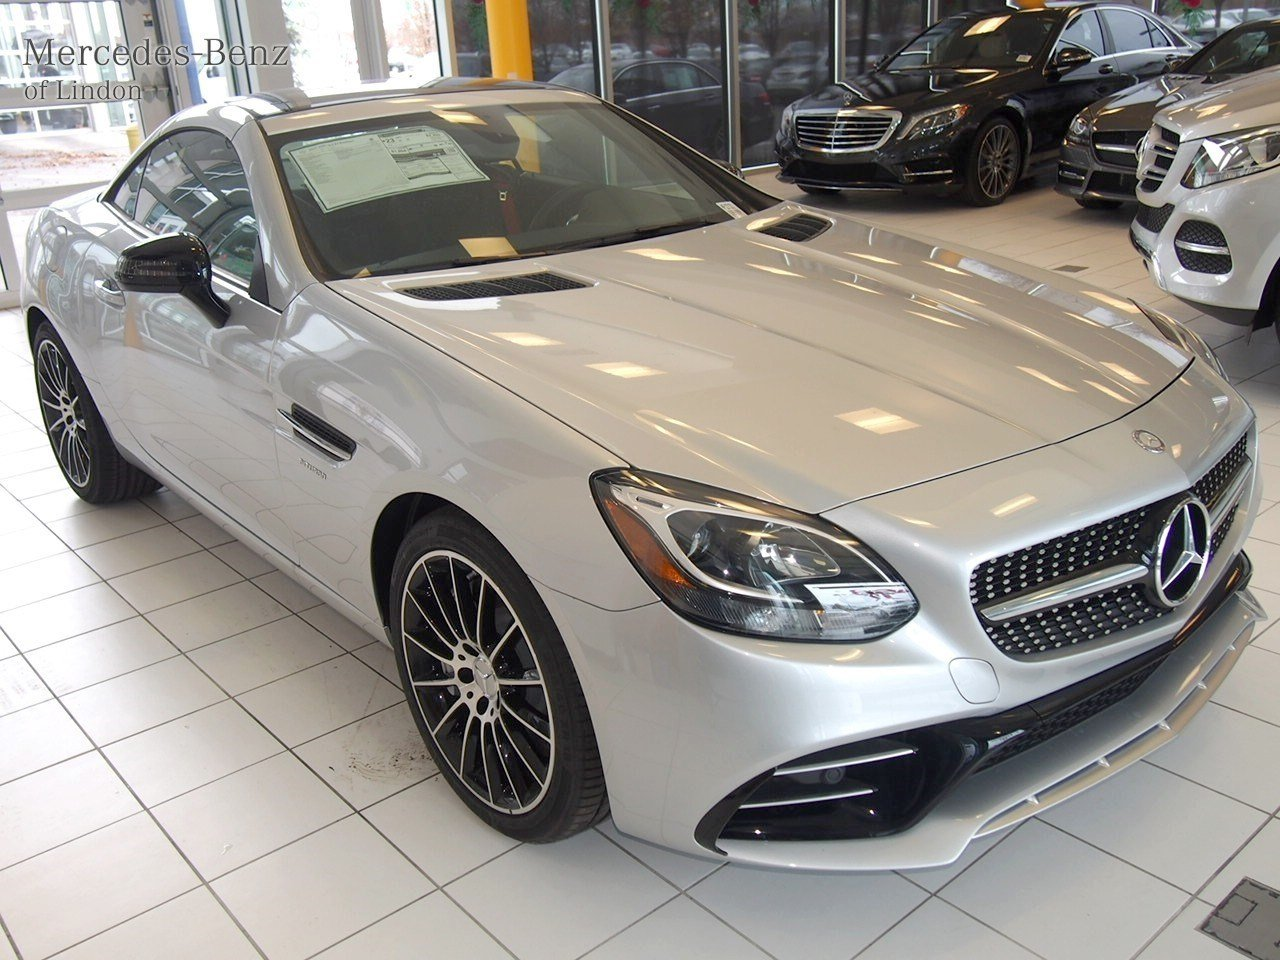 New 2017 mercedes benz slc amg slc43 convertible in for 2017 mercedes benz winter event